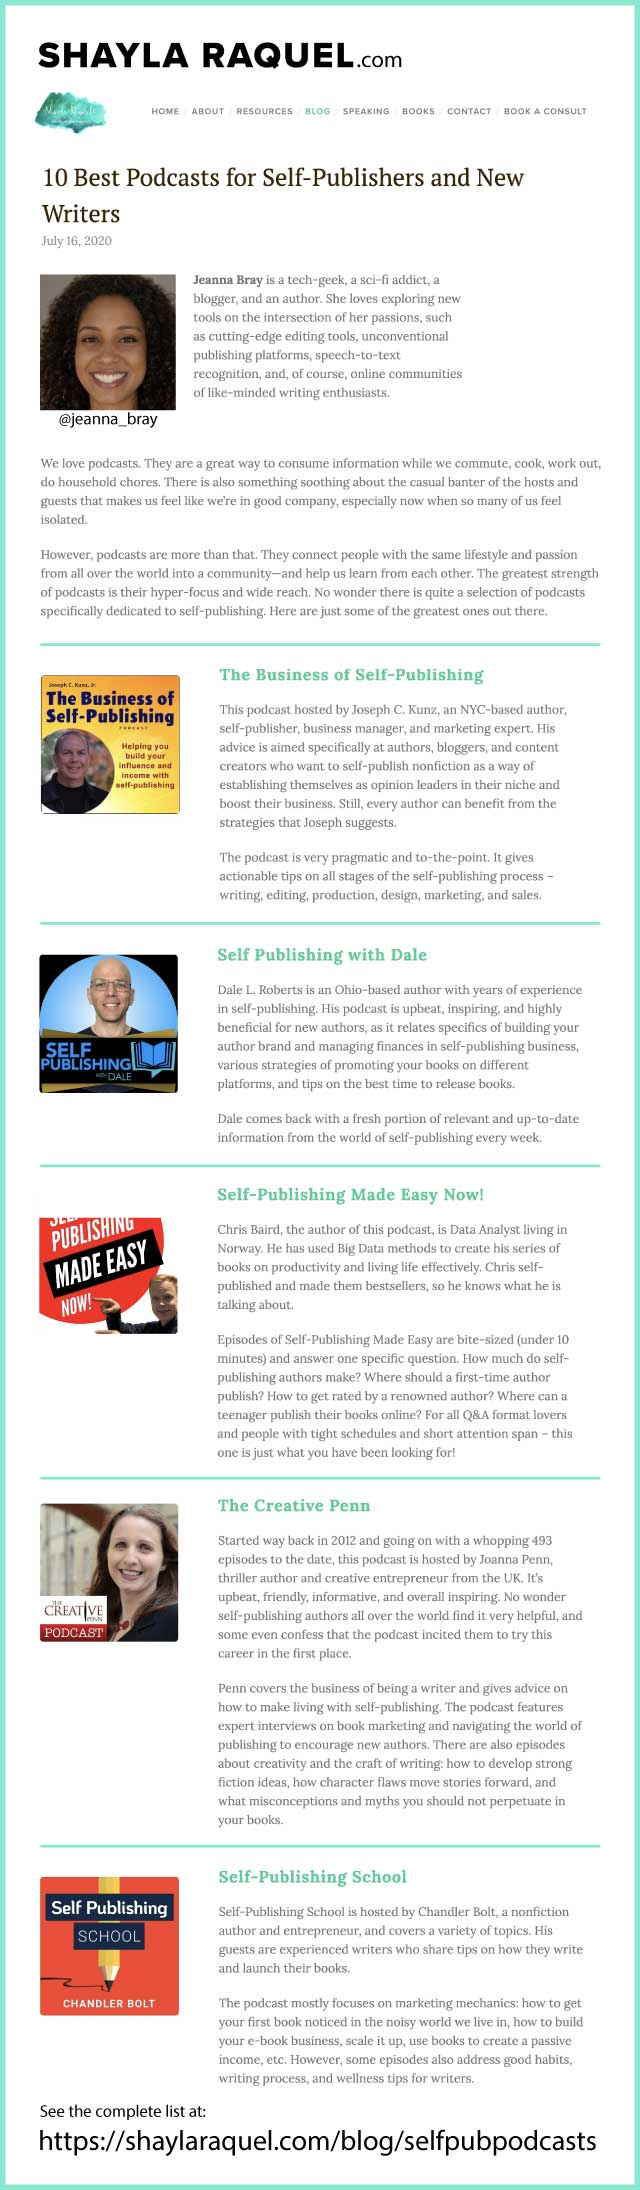 Thank you to Jeanna Bray for including my podcast on her list of 10 Best Podcasts for Self-Publishers and New Writers for 2020